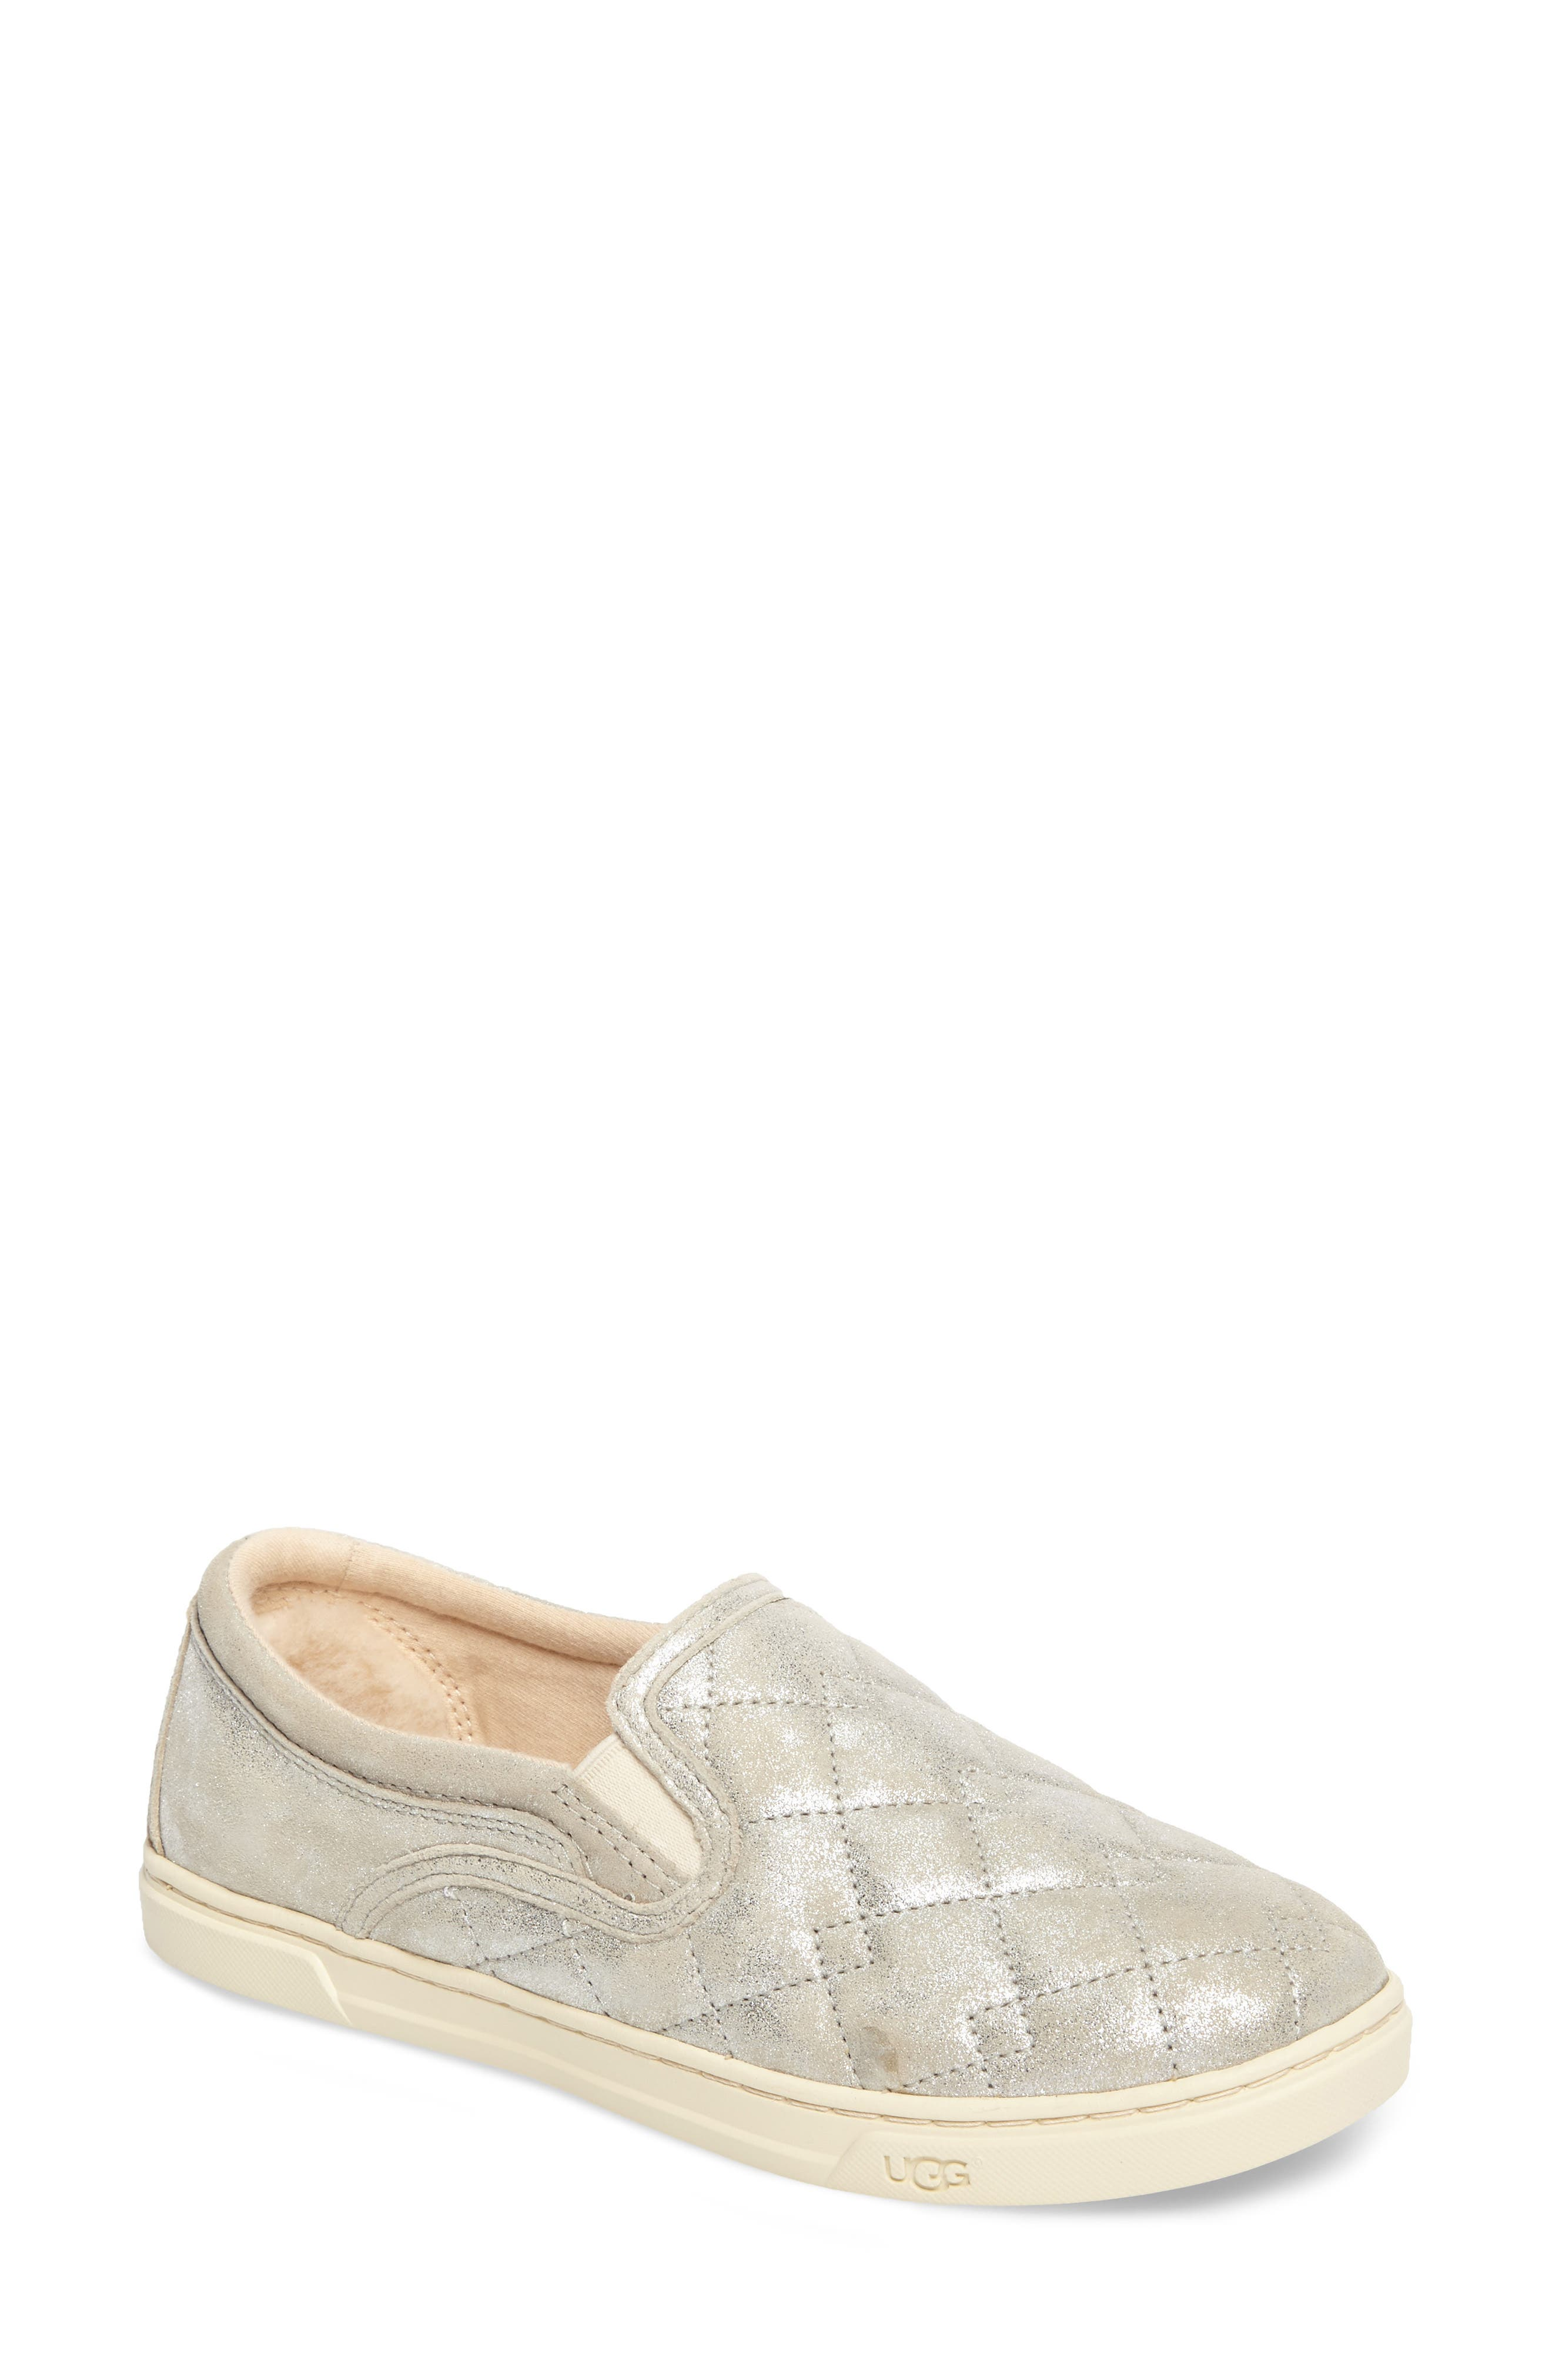 Fierce Stardust Quilted Slip-On Sneaker,                         Main,                         color, 040